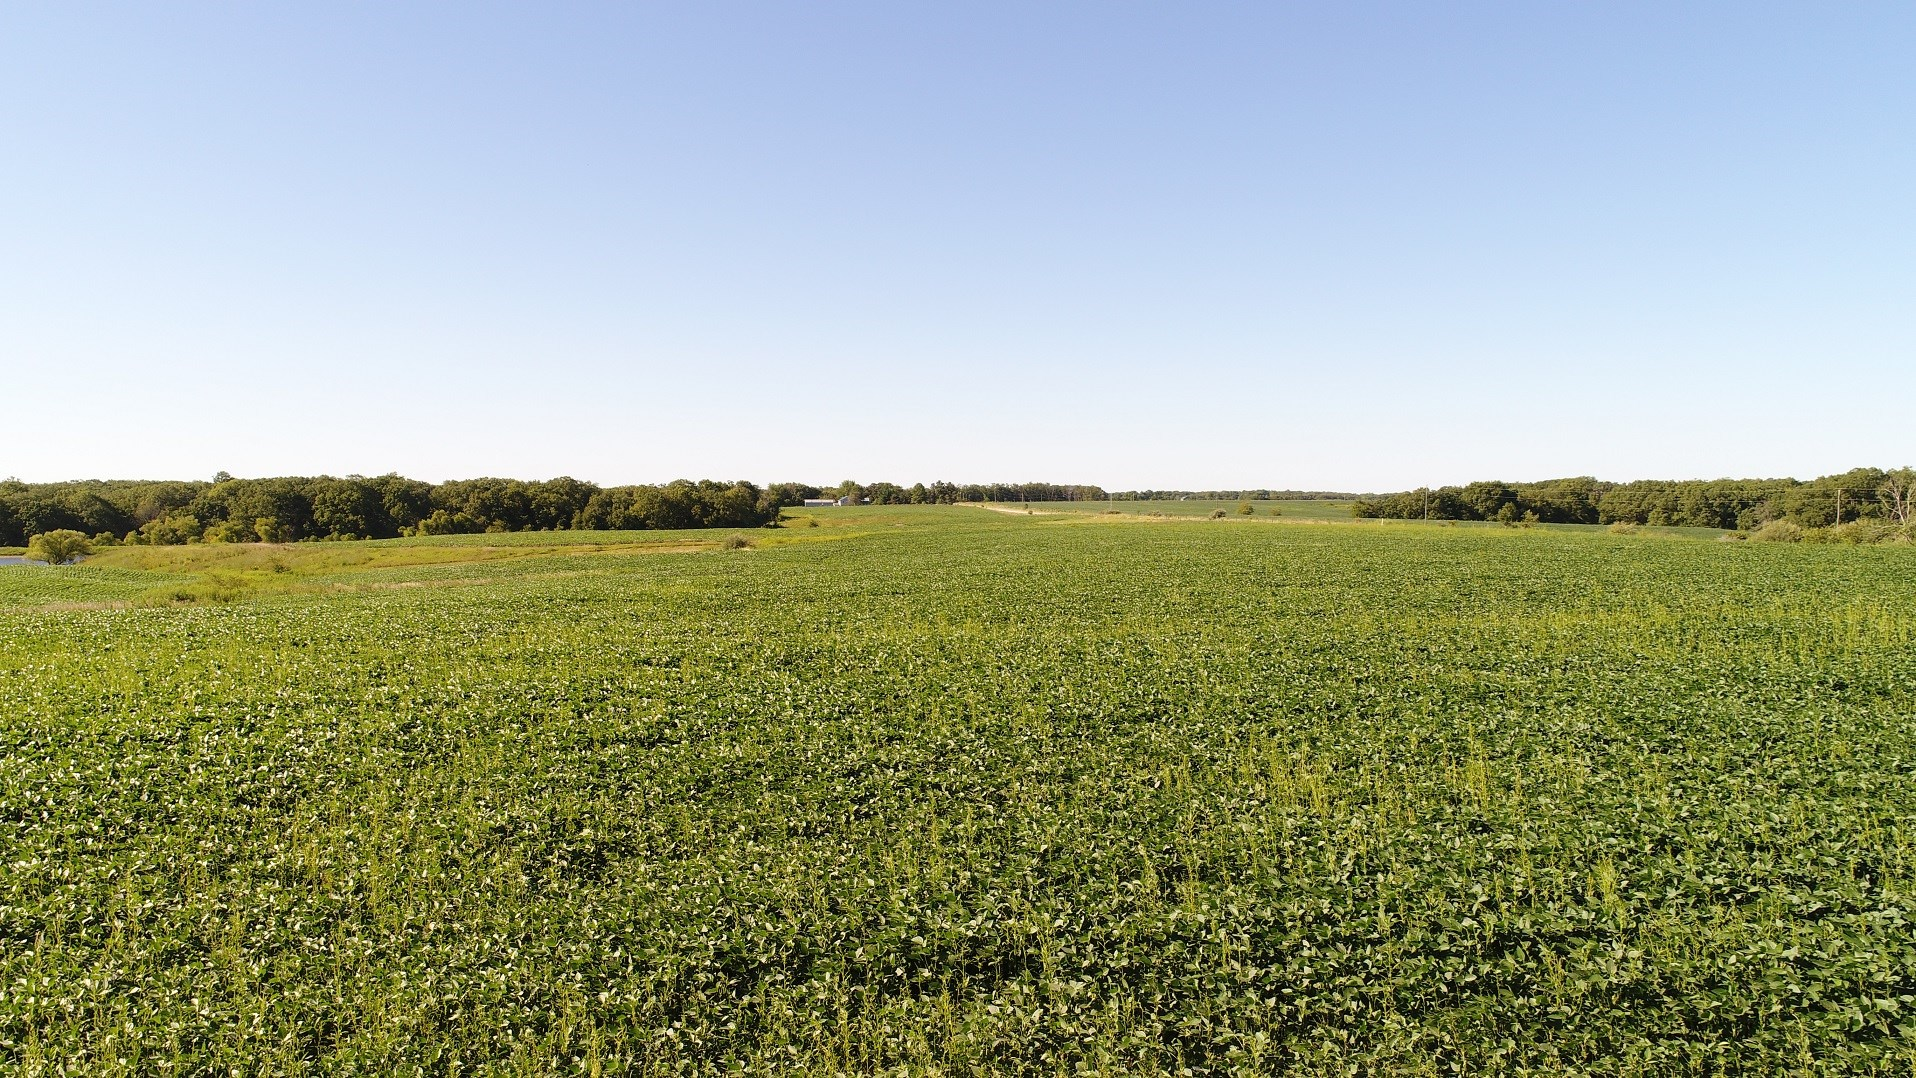 NORTHERN MO FARM FOR SALE, LEWIS COUNTY MO ROW CROP FARM